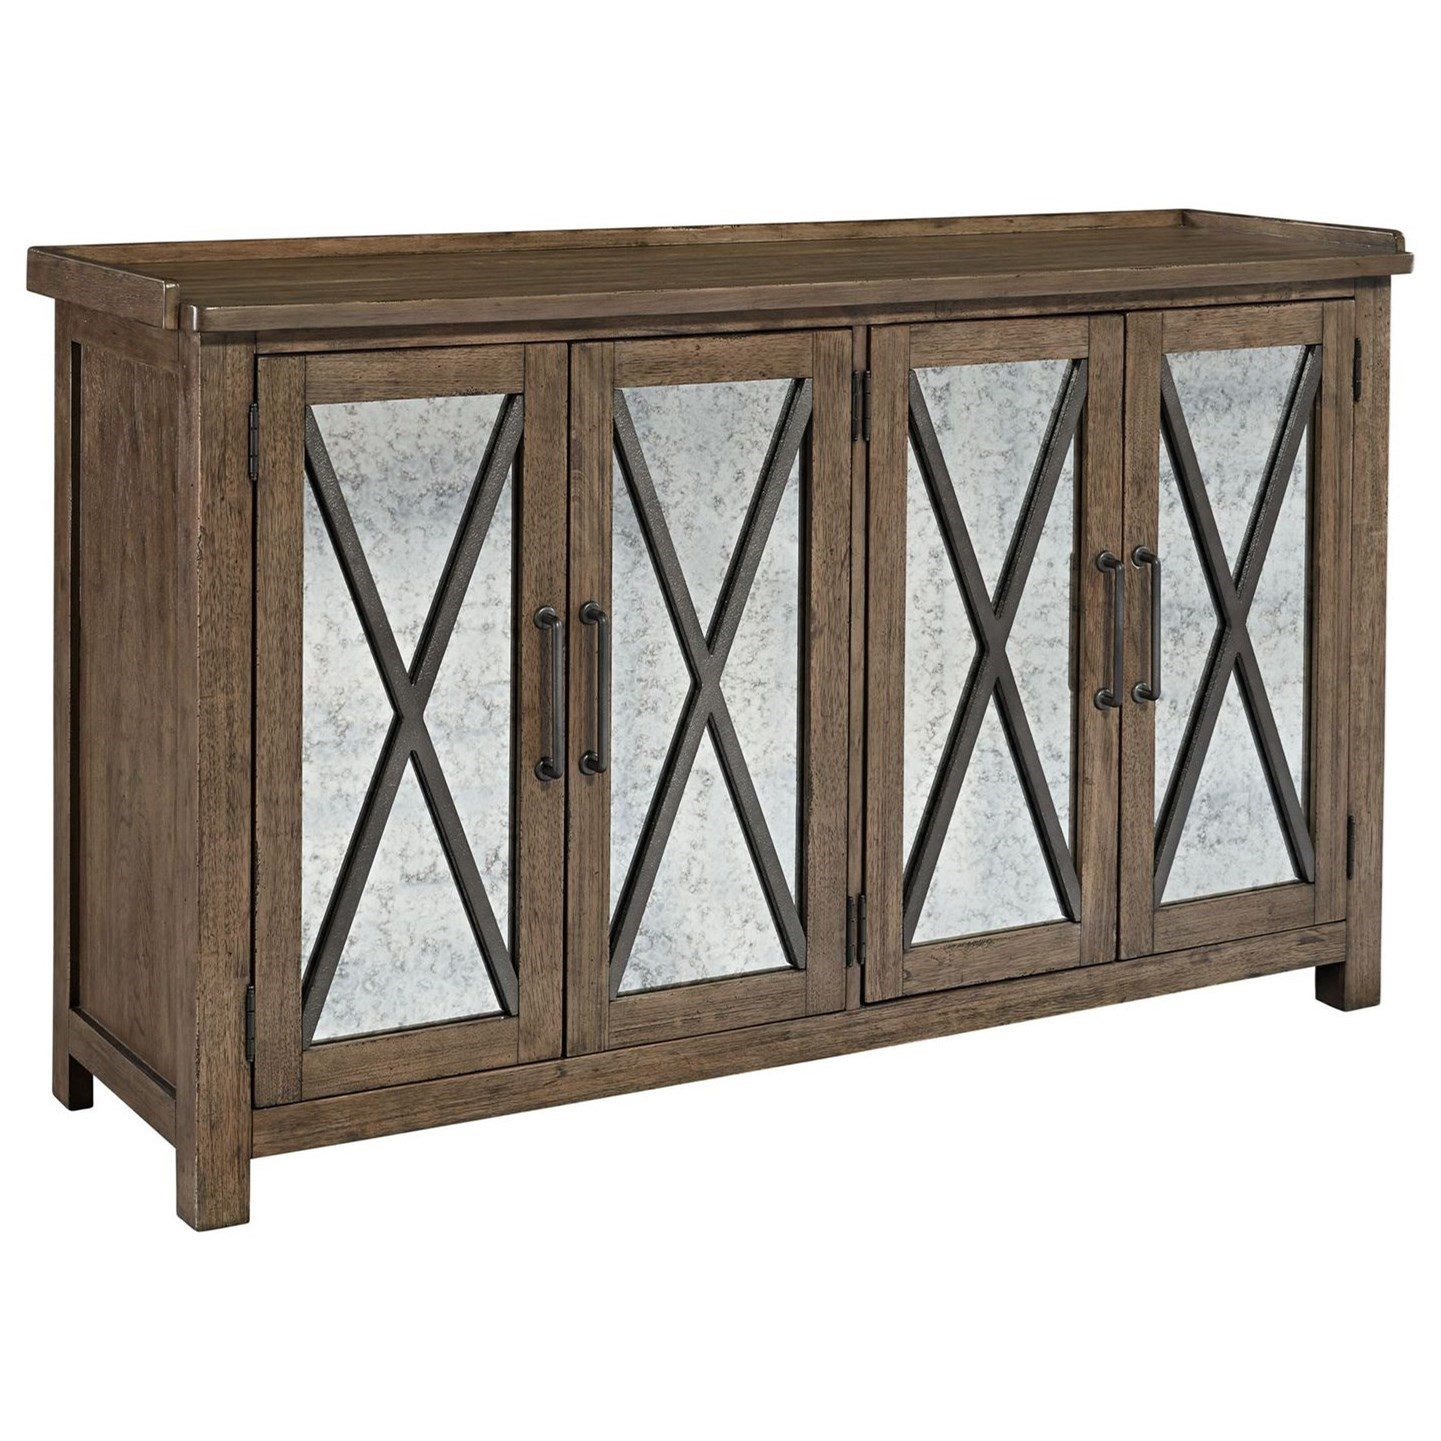 Sideboard with Reversible Doors